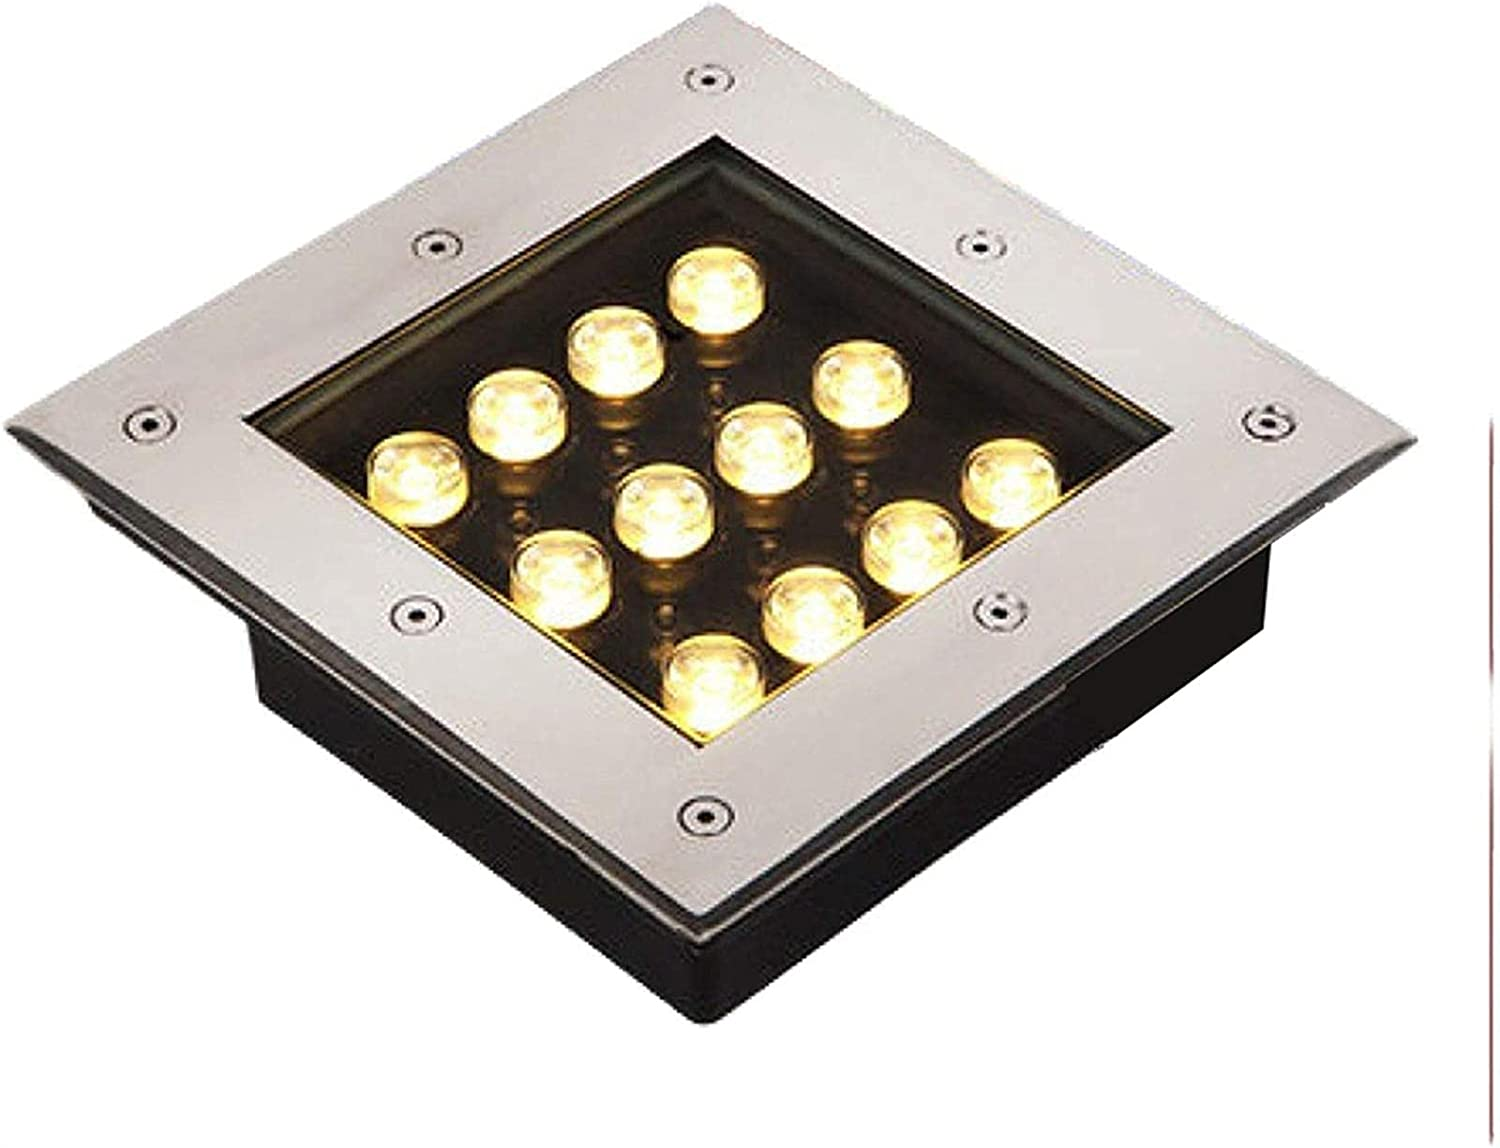 New Free Shipping MWKLW 12W Outdoor In-Ground Max 87% OFF Lights Glass Steel Square Stainless